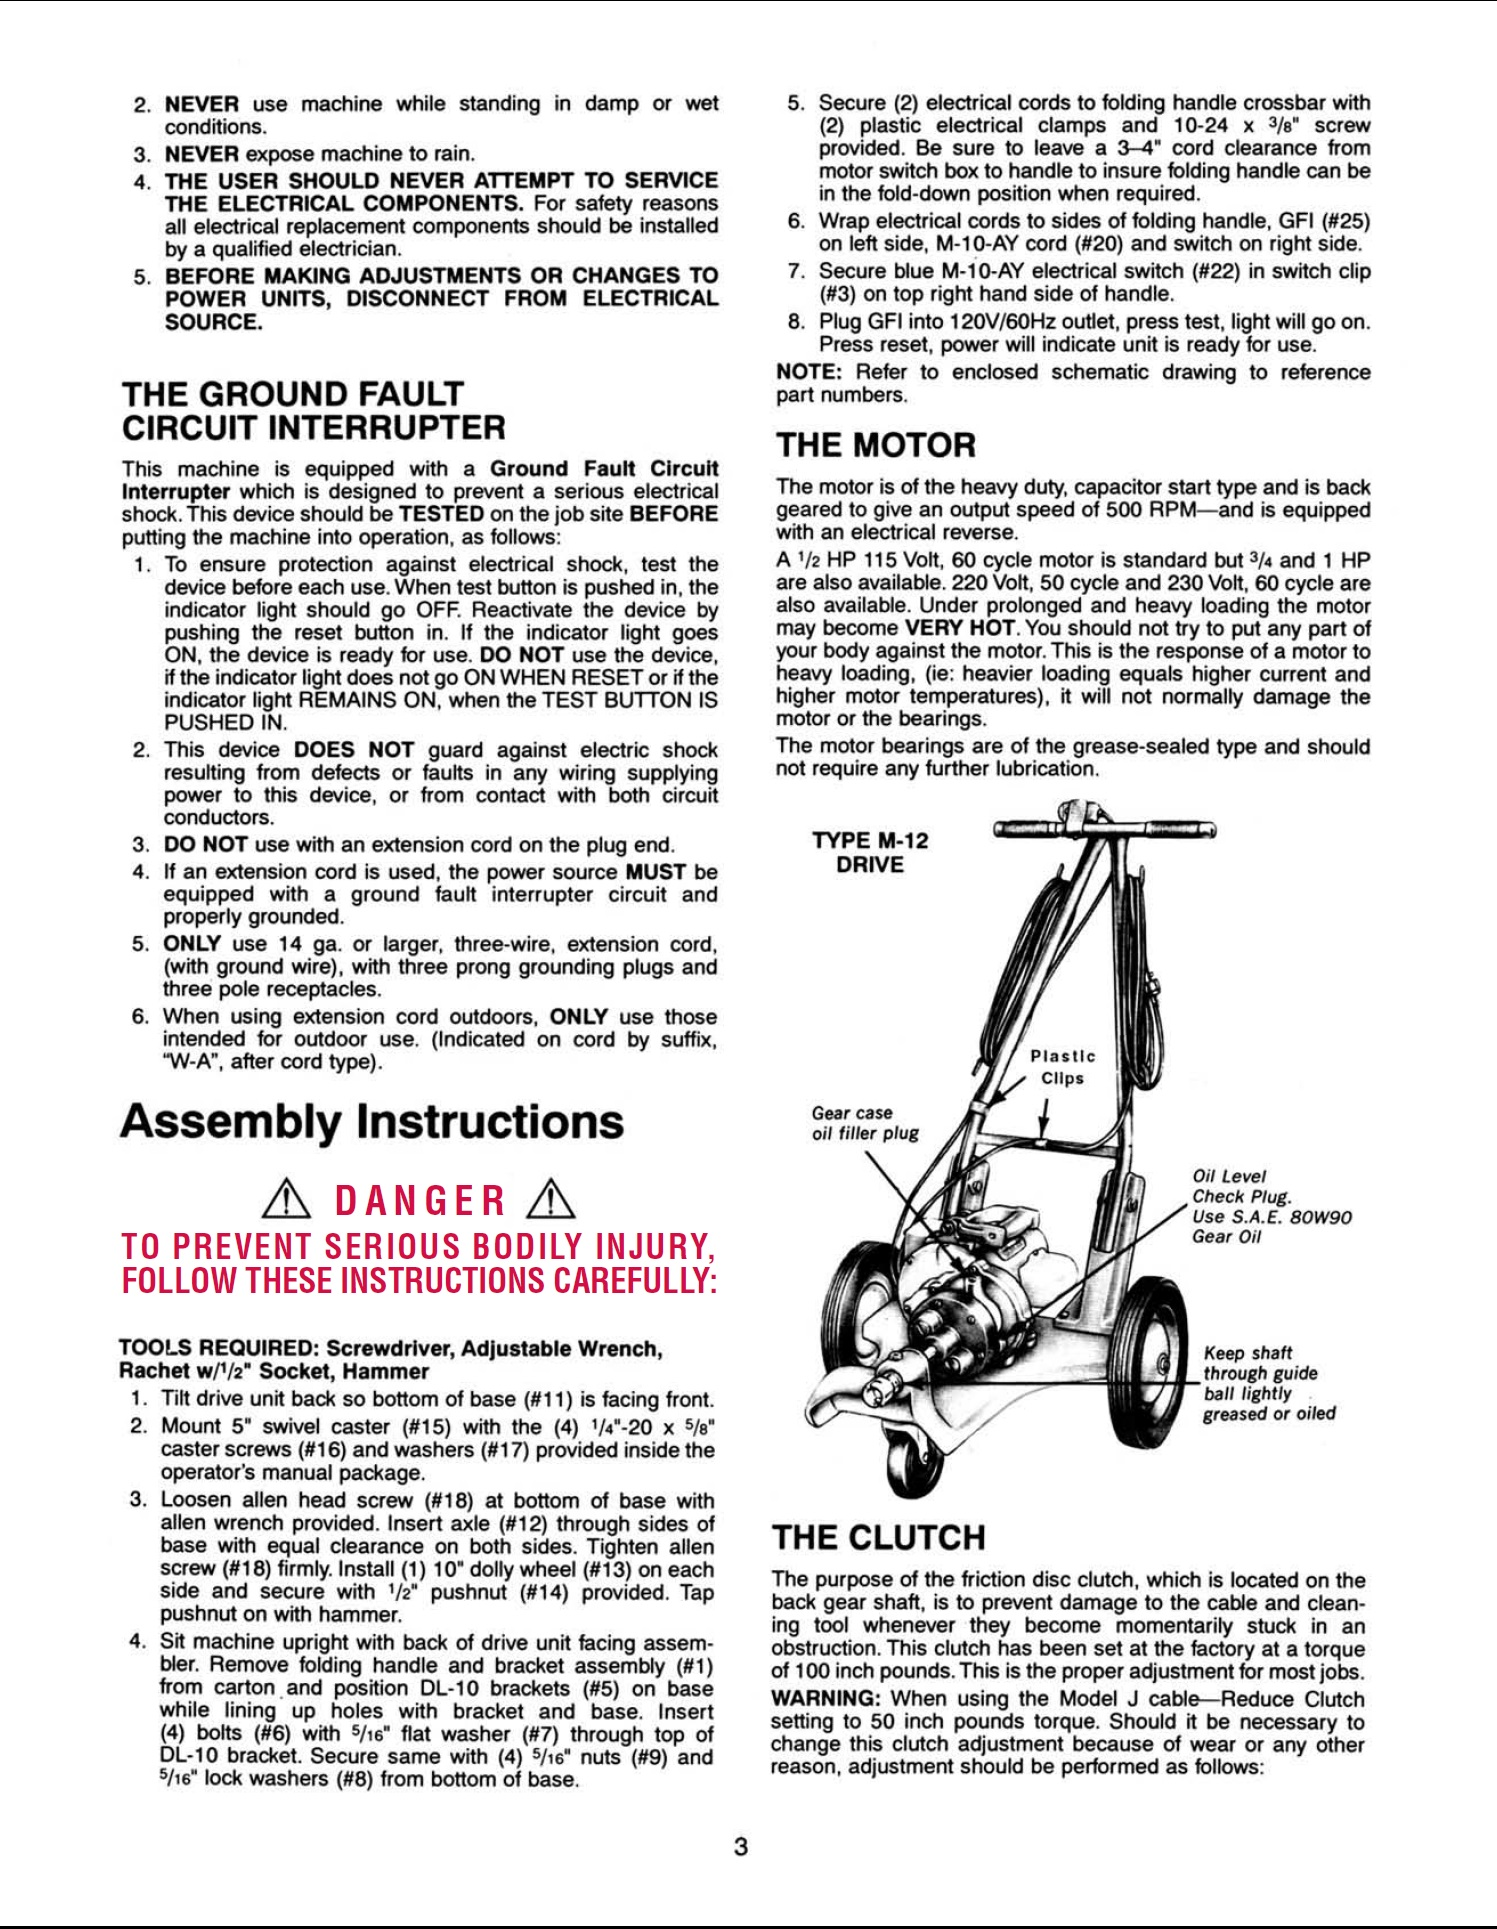 model-c-operating-manual-page-3.jpg